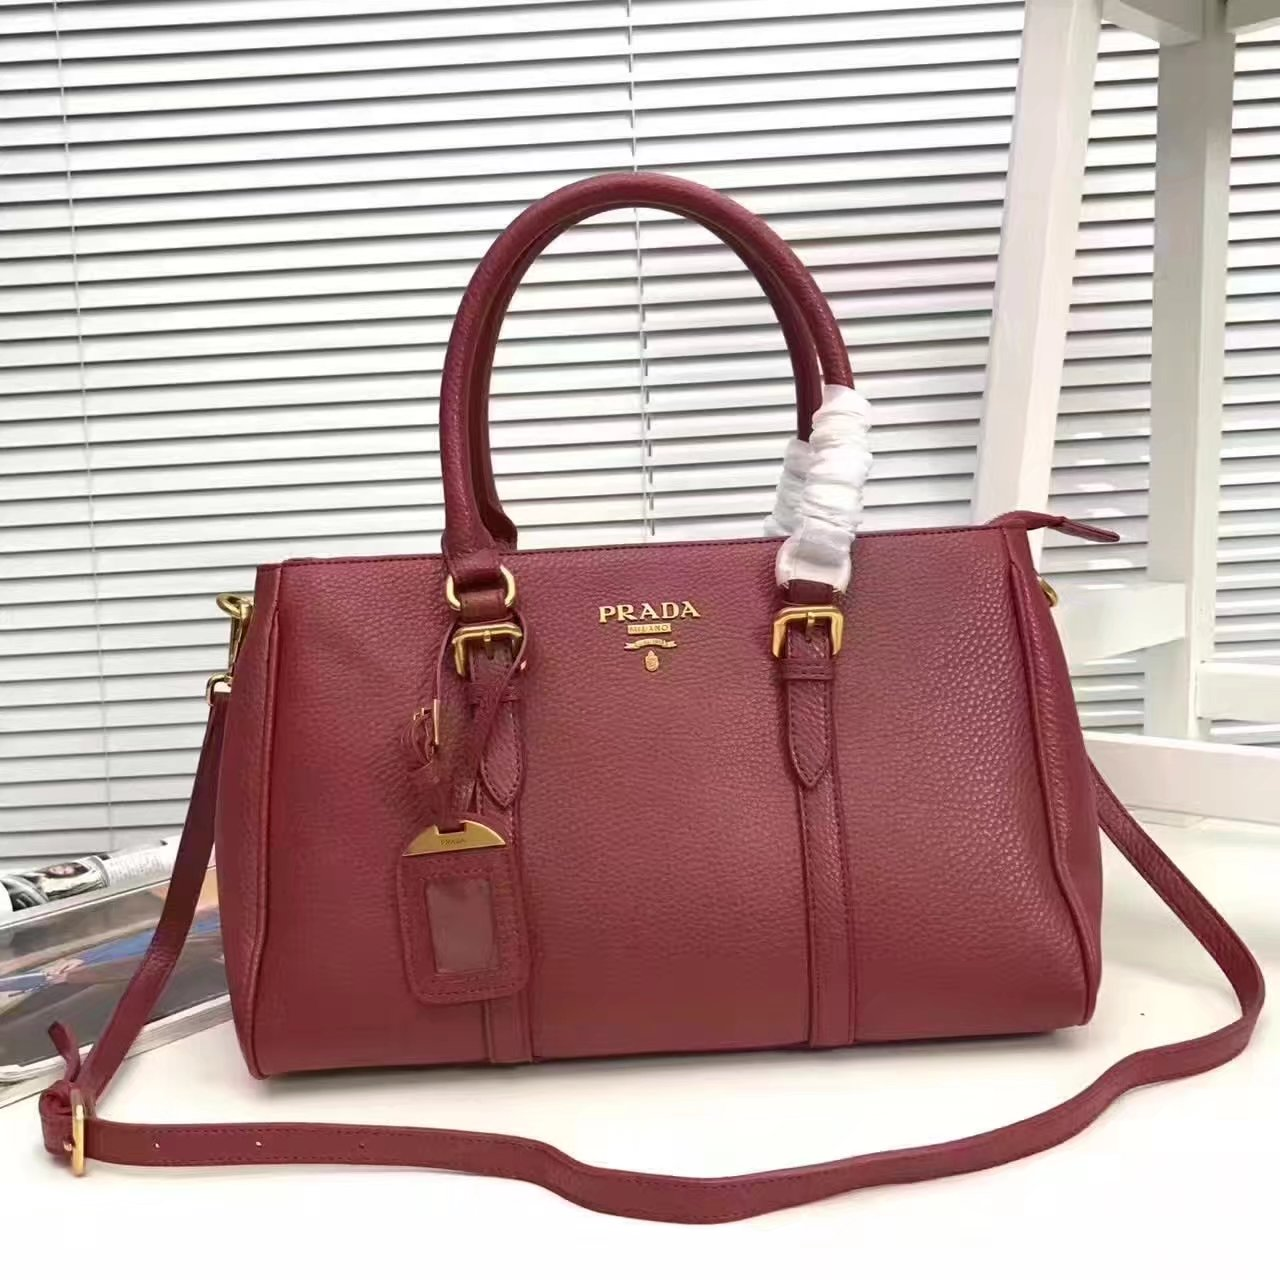 Prada 2996 Women 175 Tote Handbag Red